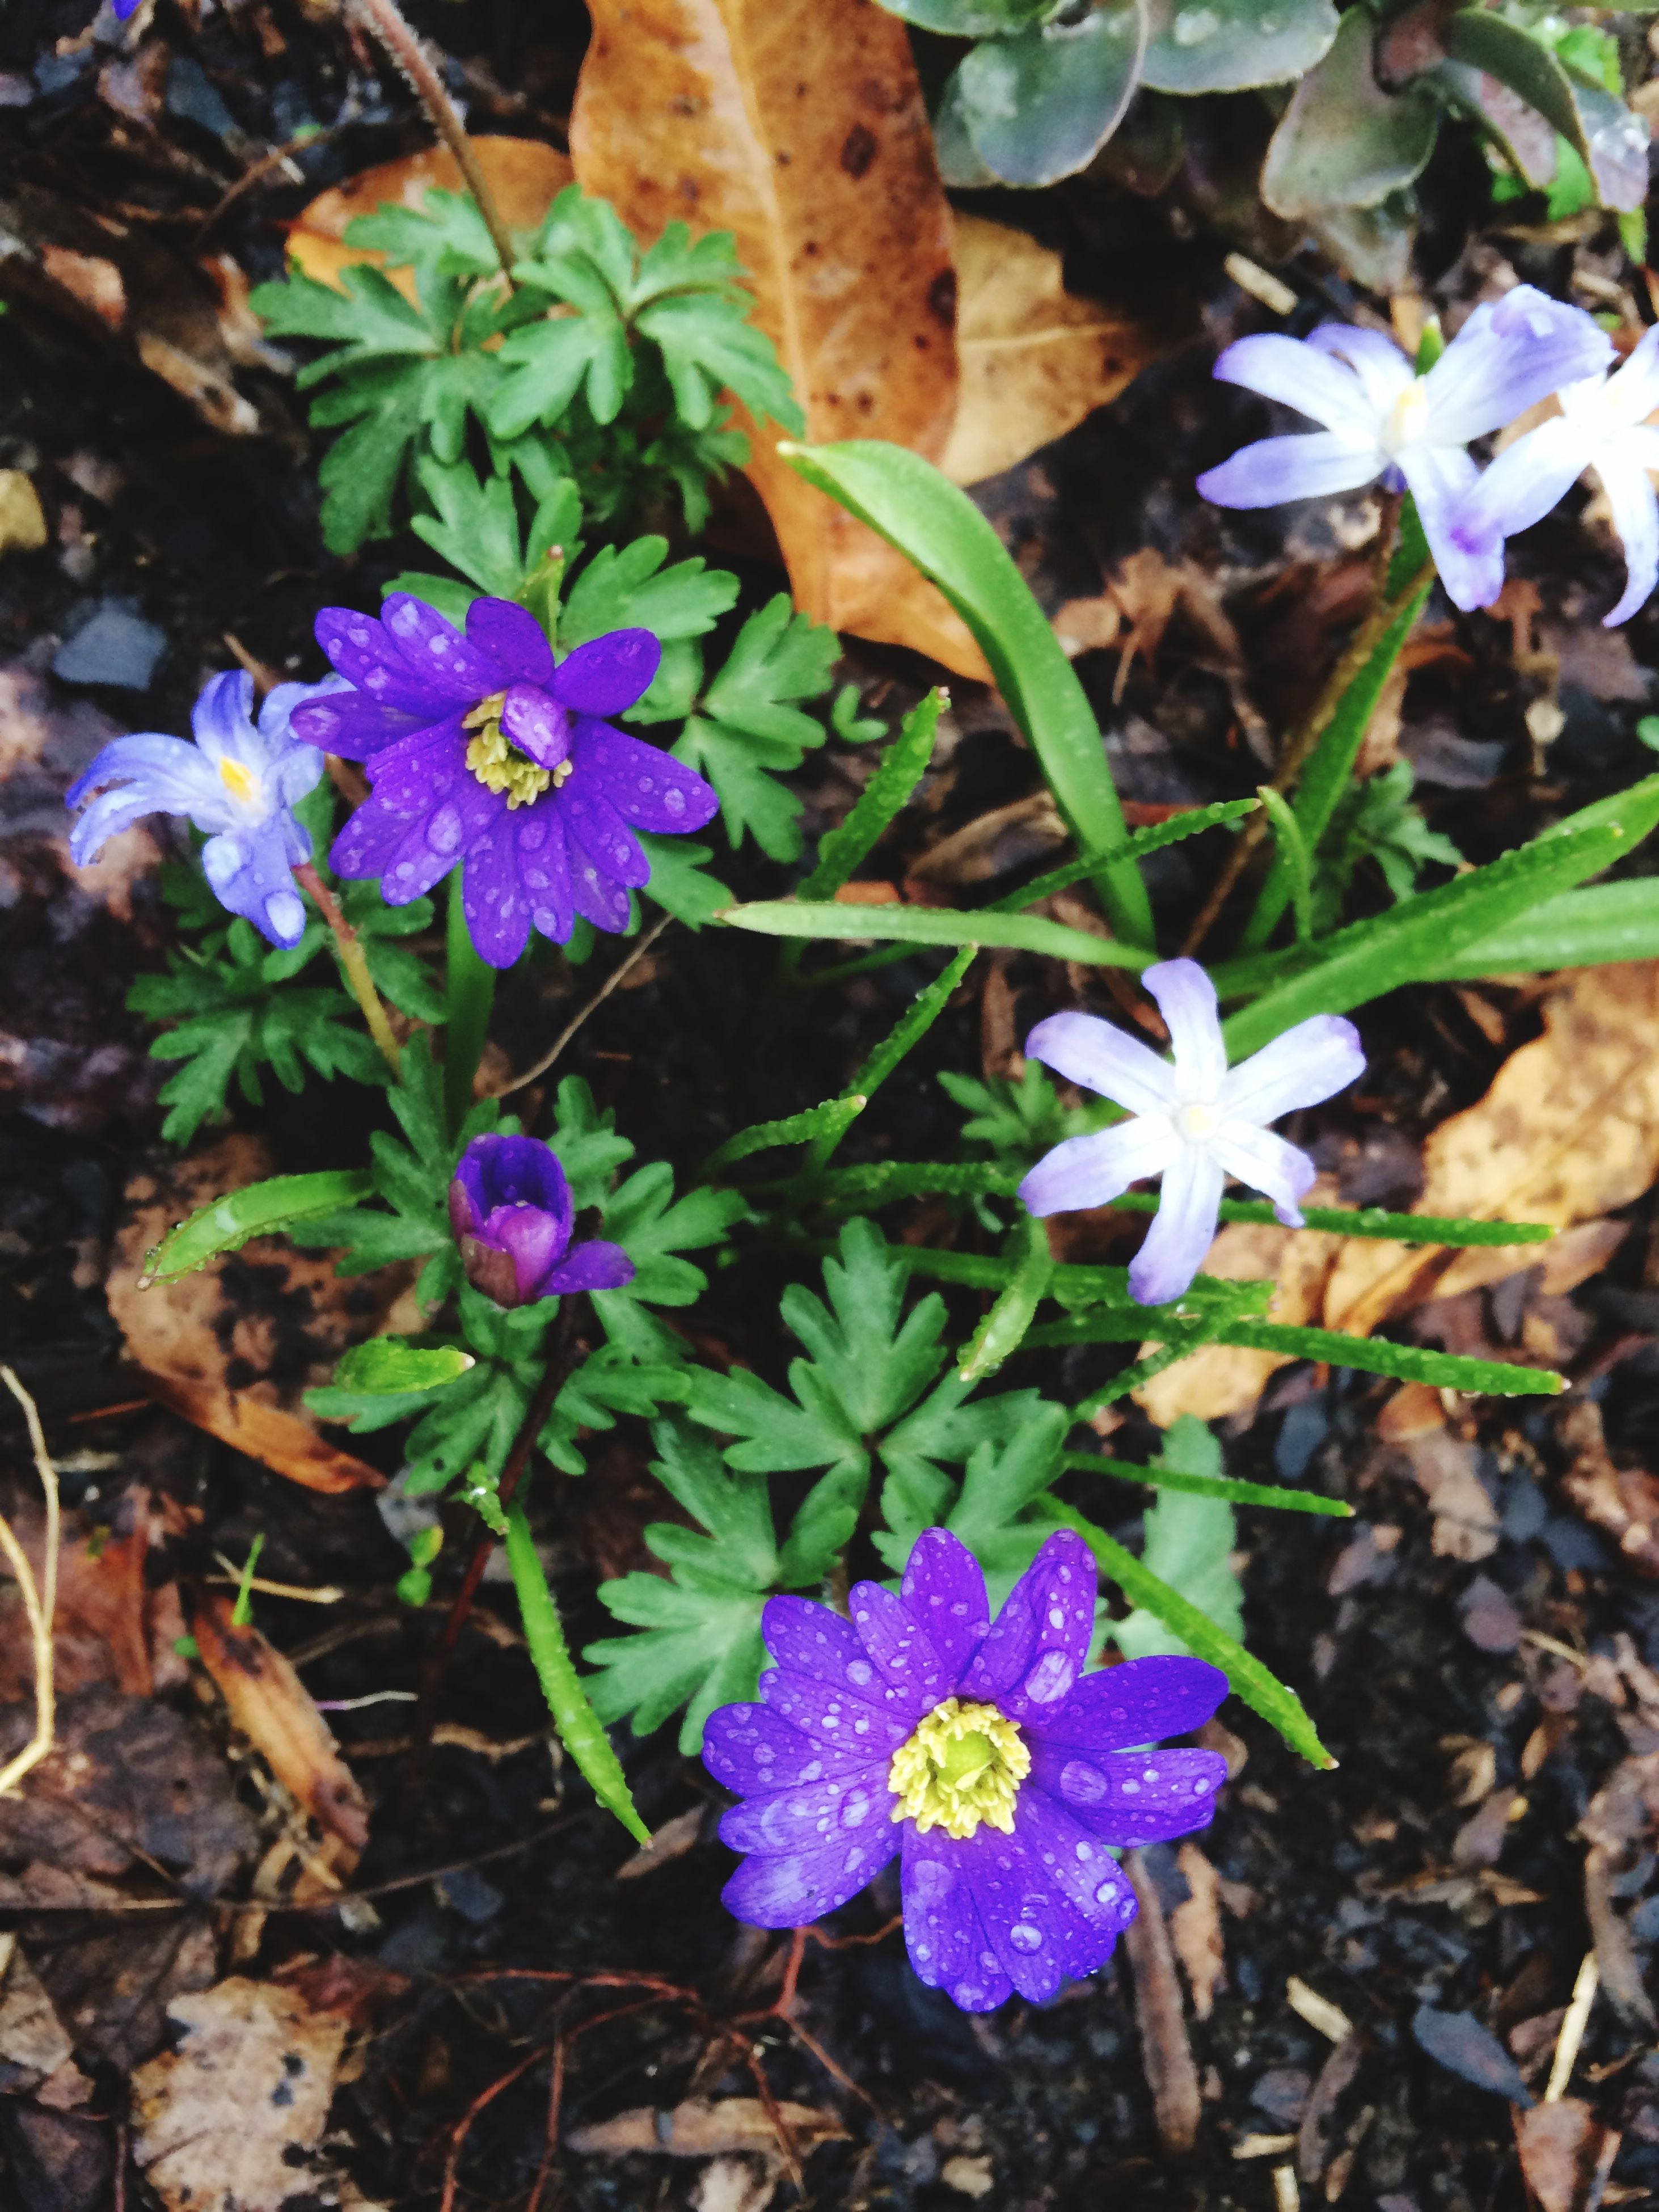 flower, petal, freshness, fragility, purple, growth, flower head, high angle view, beauty in nature, plant, leaf, blooming, nature, in bloom, close-up, field, botany, outdoors, springtime, no people